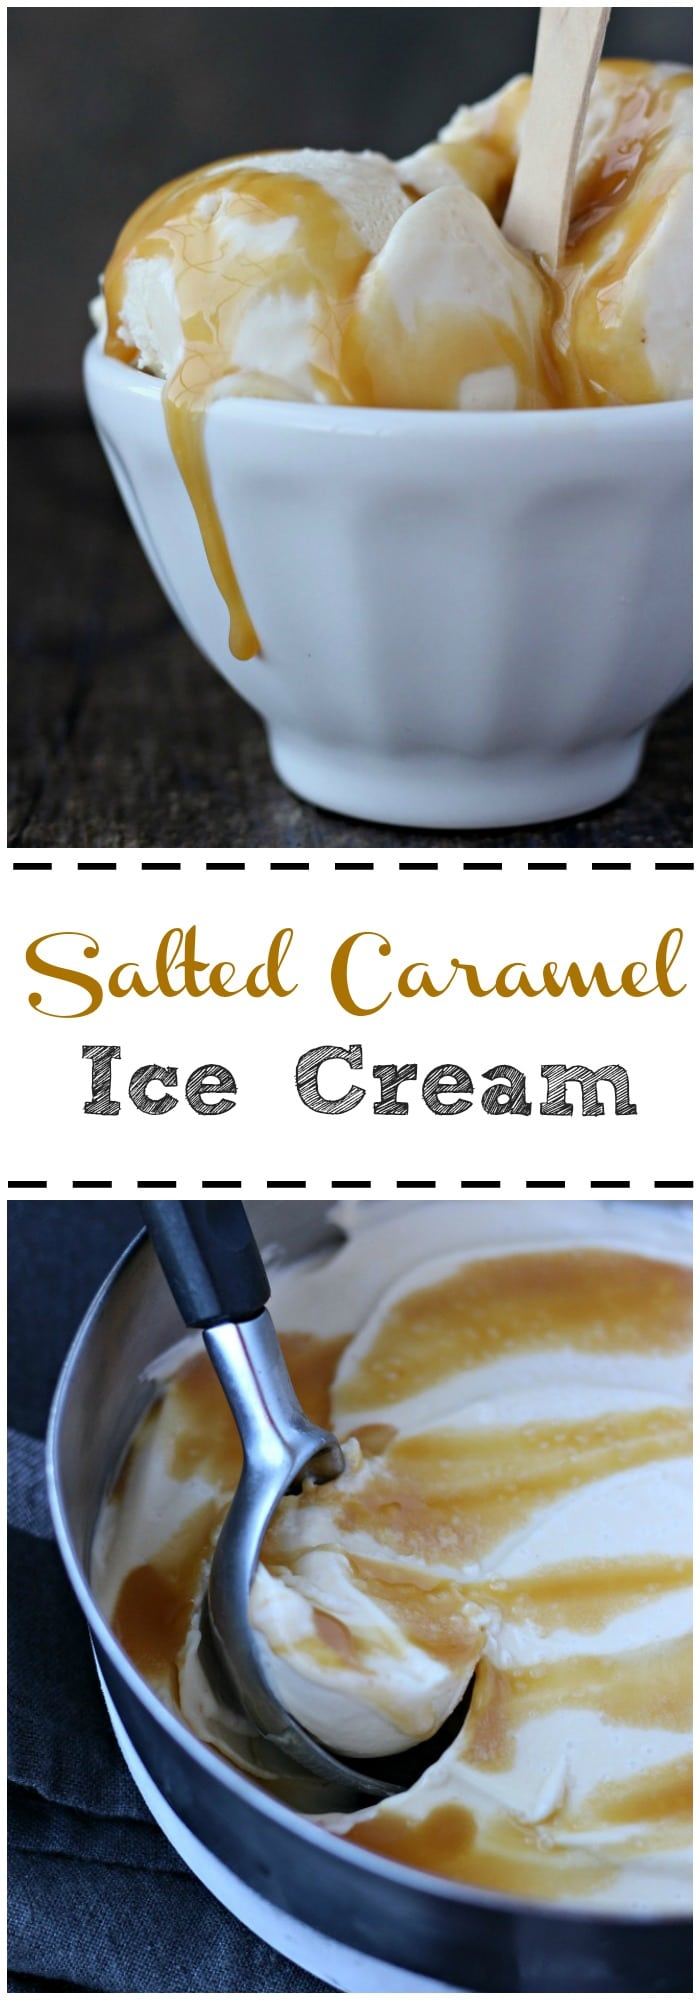 This salted caramel ice cream recipe is to die for. A rich caramel layer that melts in your mouth, distracted by a settled note of sea salt, washed by a creamy wave of sweet caramel ice cream! gardeninthekitchen.com